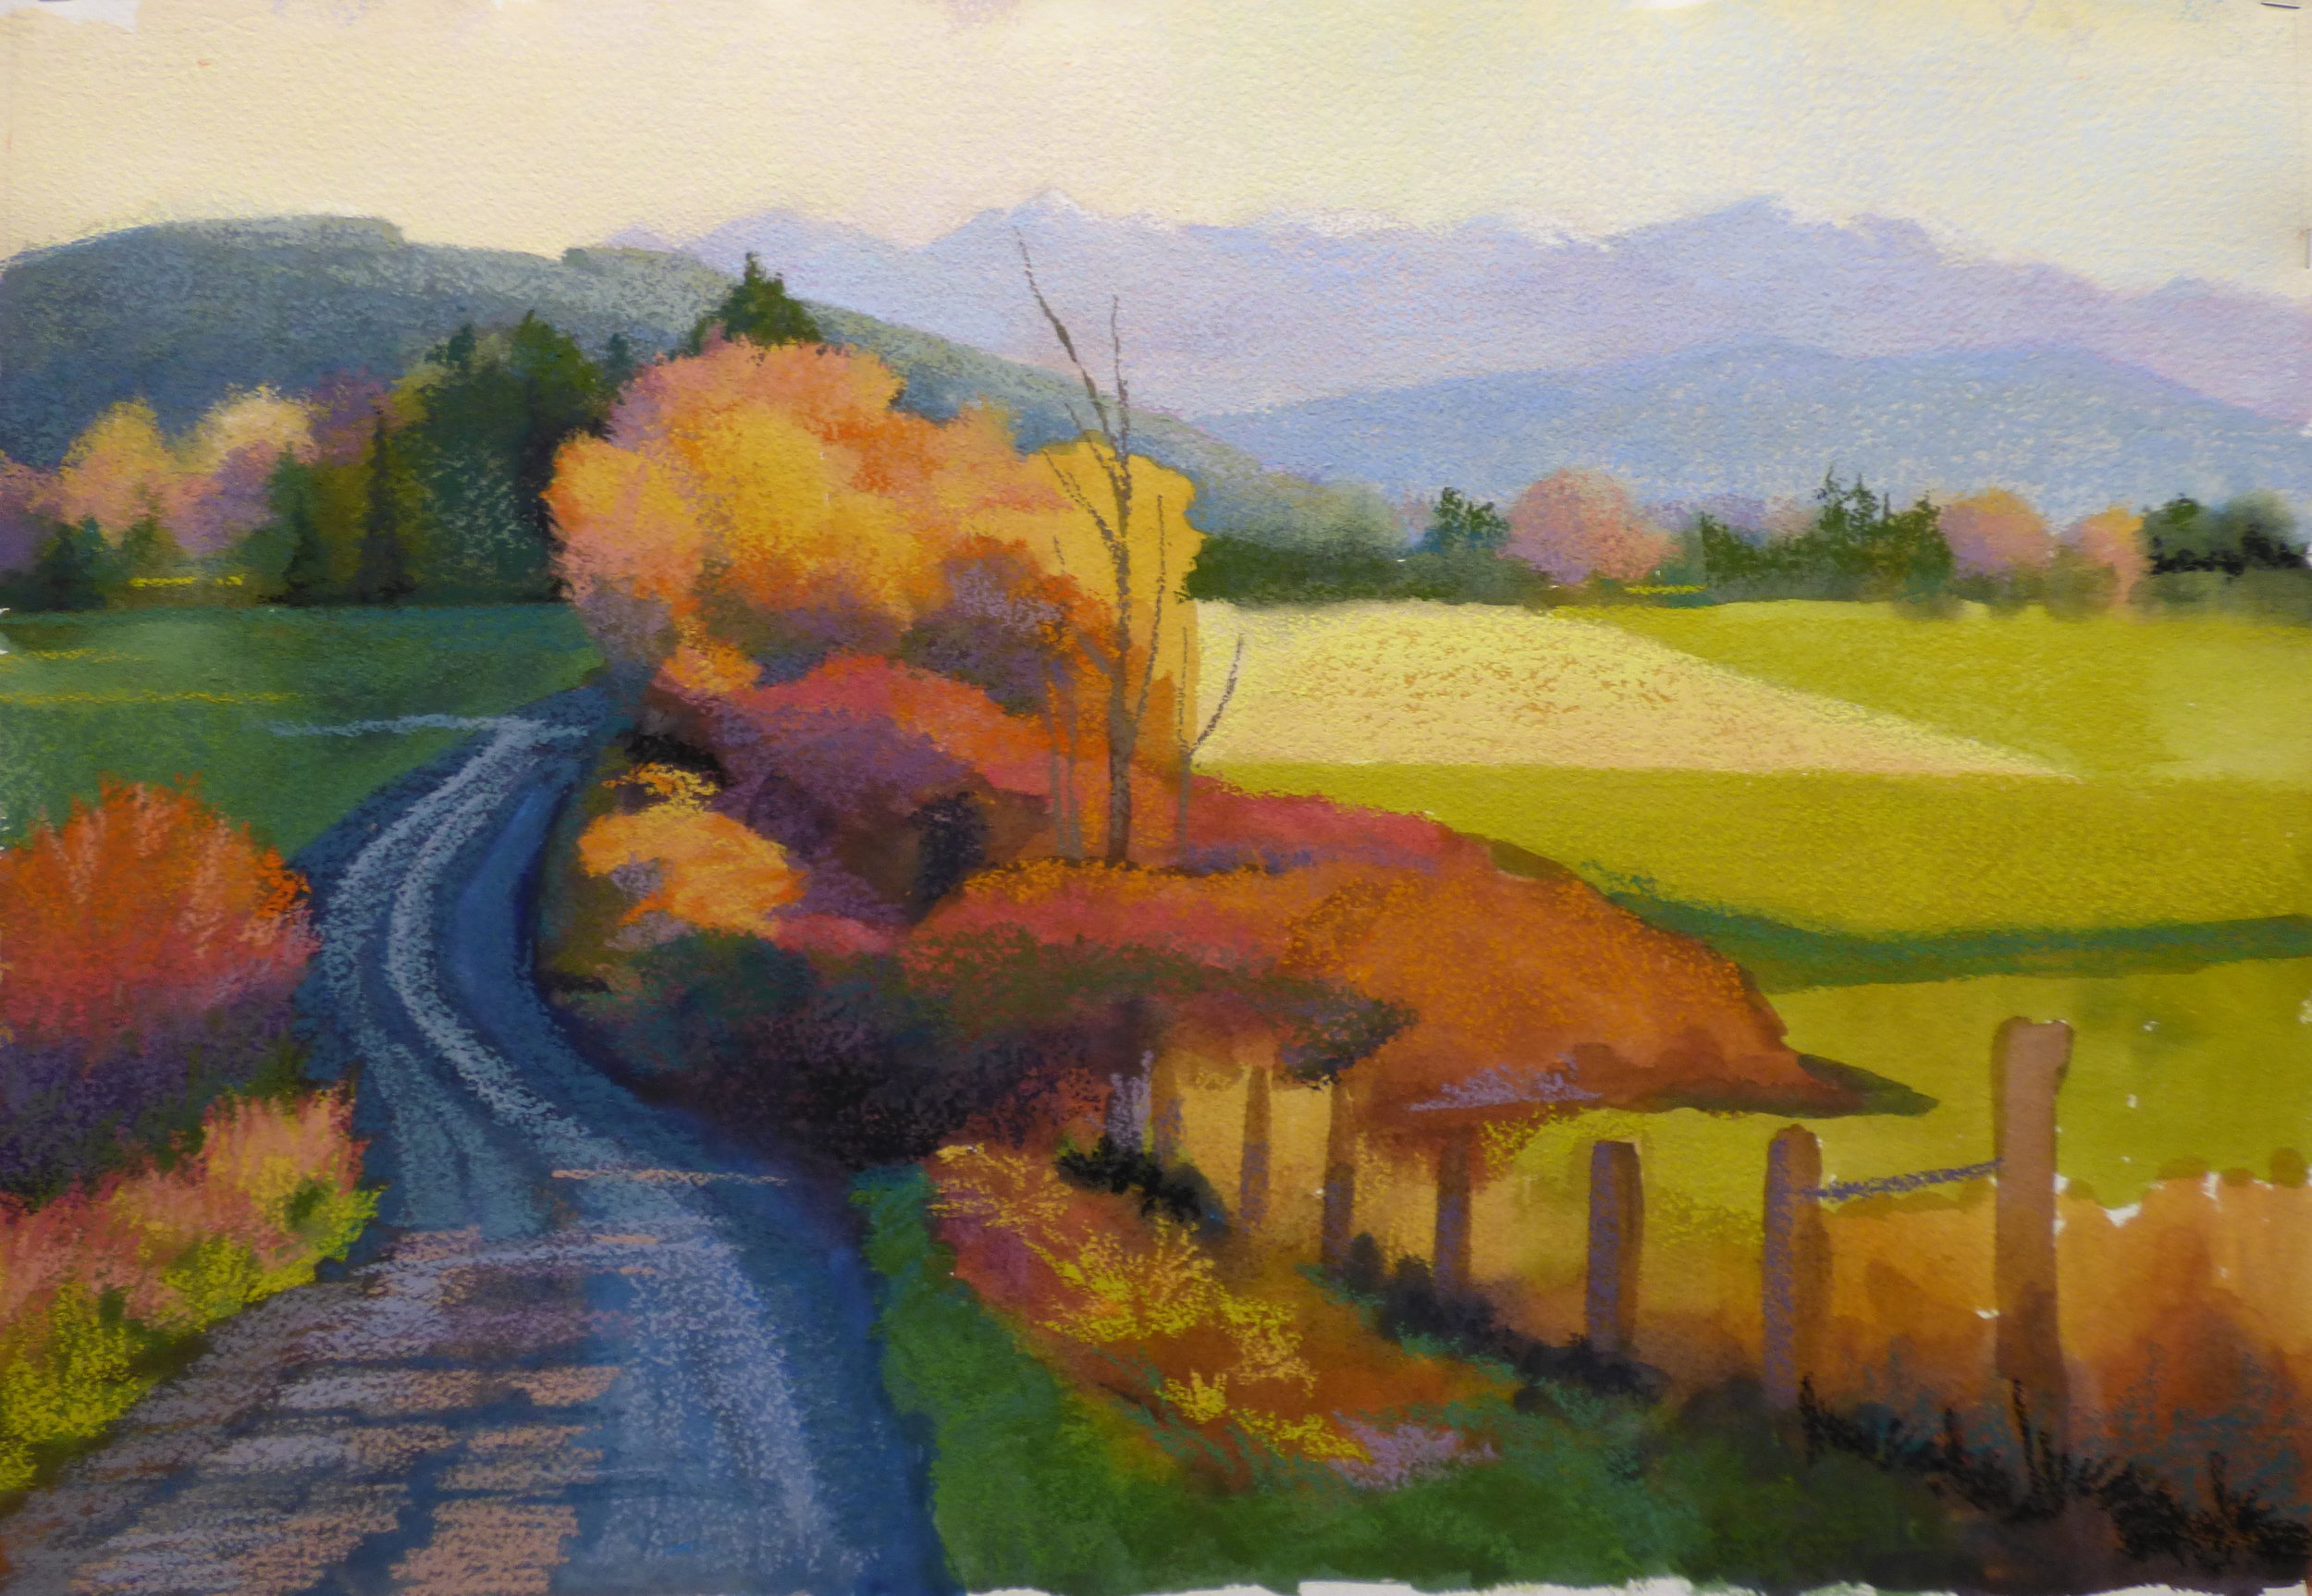 I began stroking mid and light value pastels over the watercolor. My goal was to make each area rich in colors.